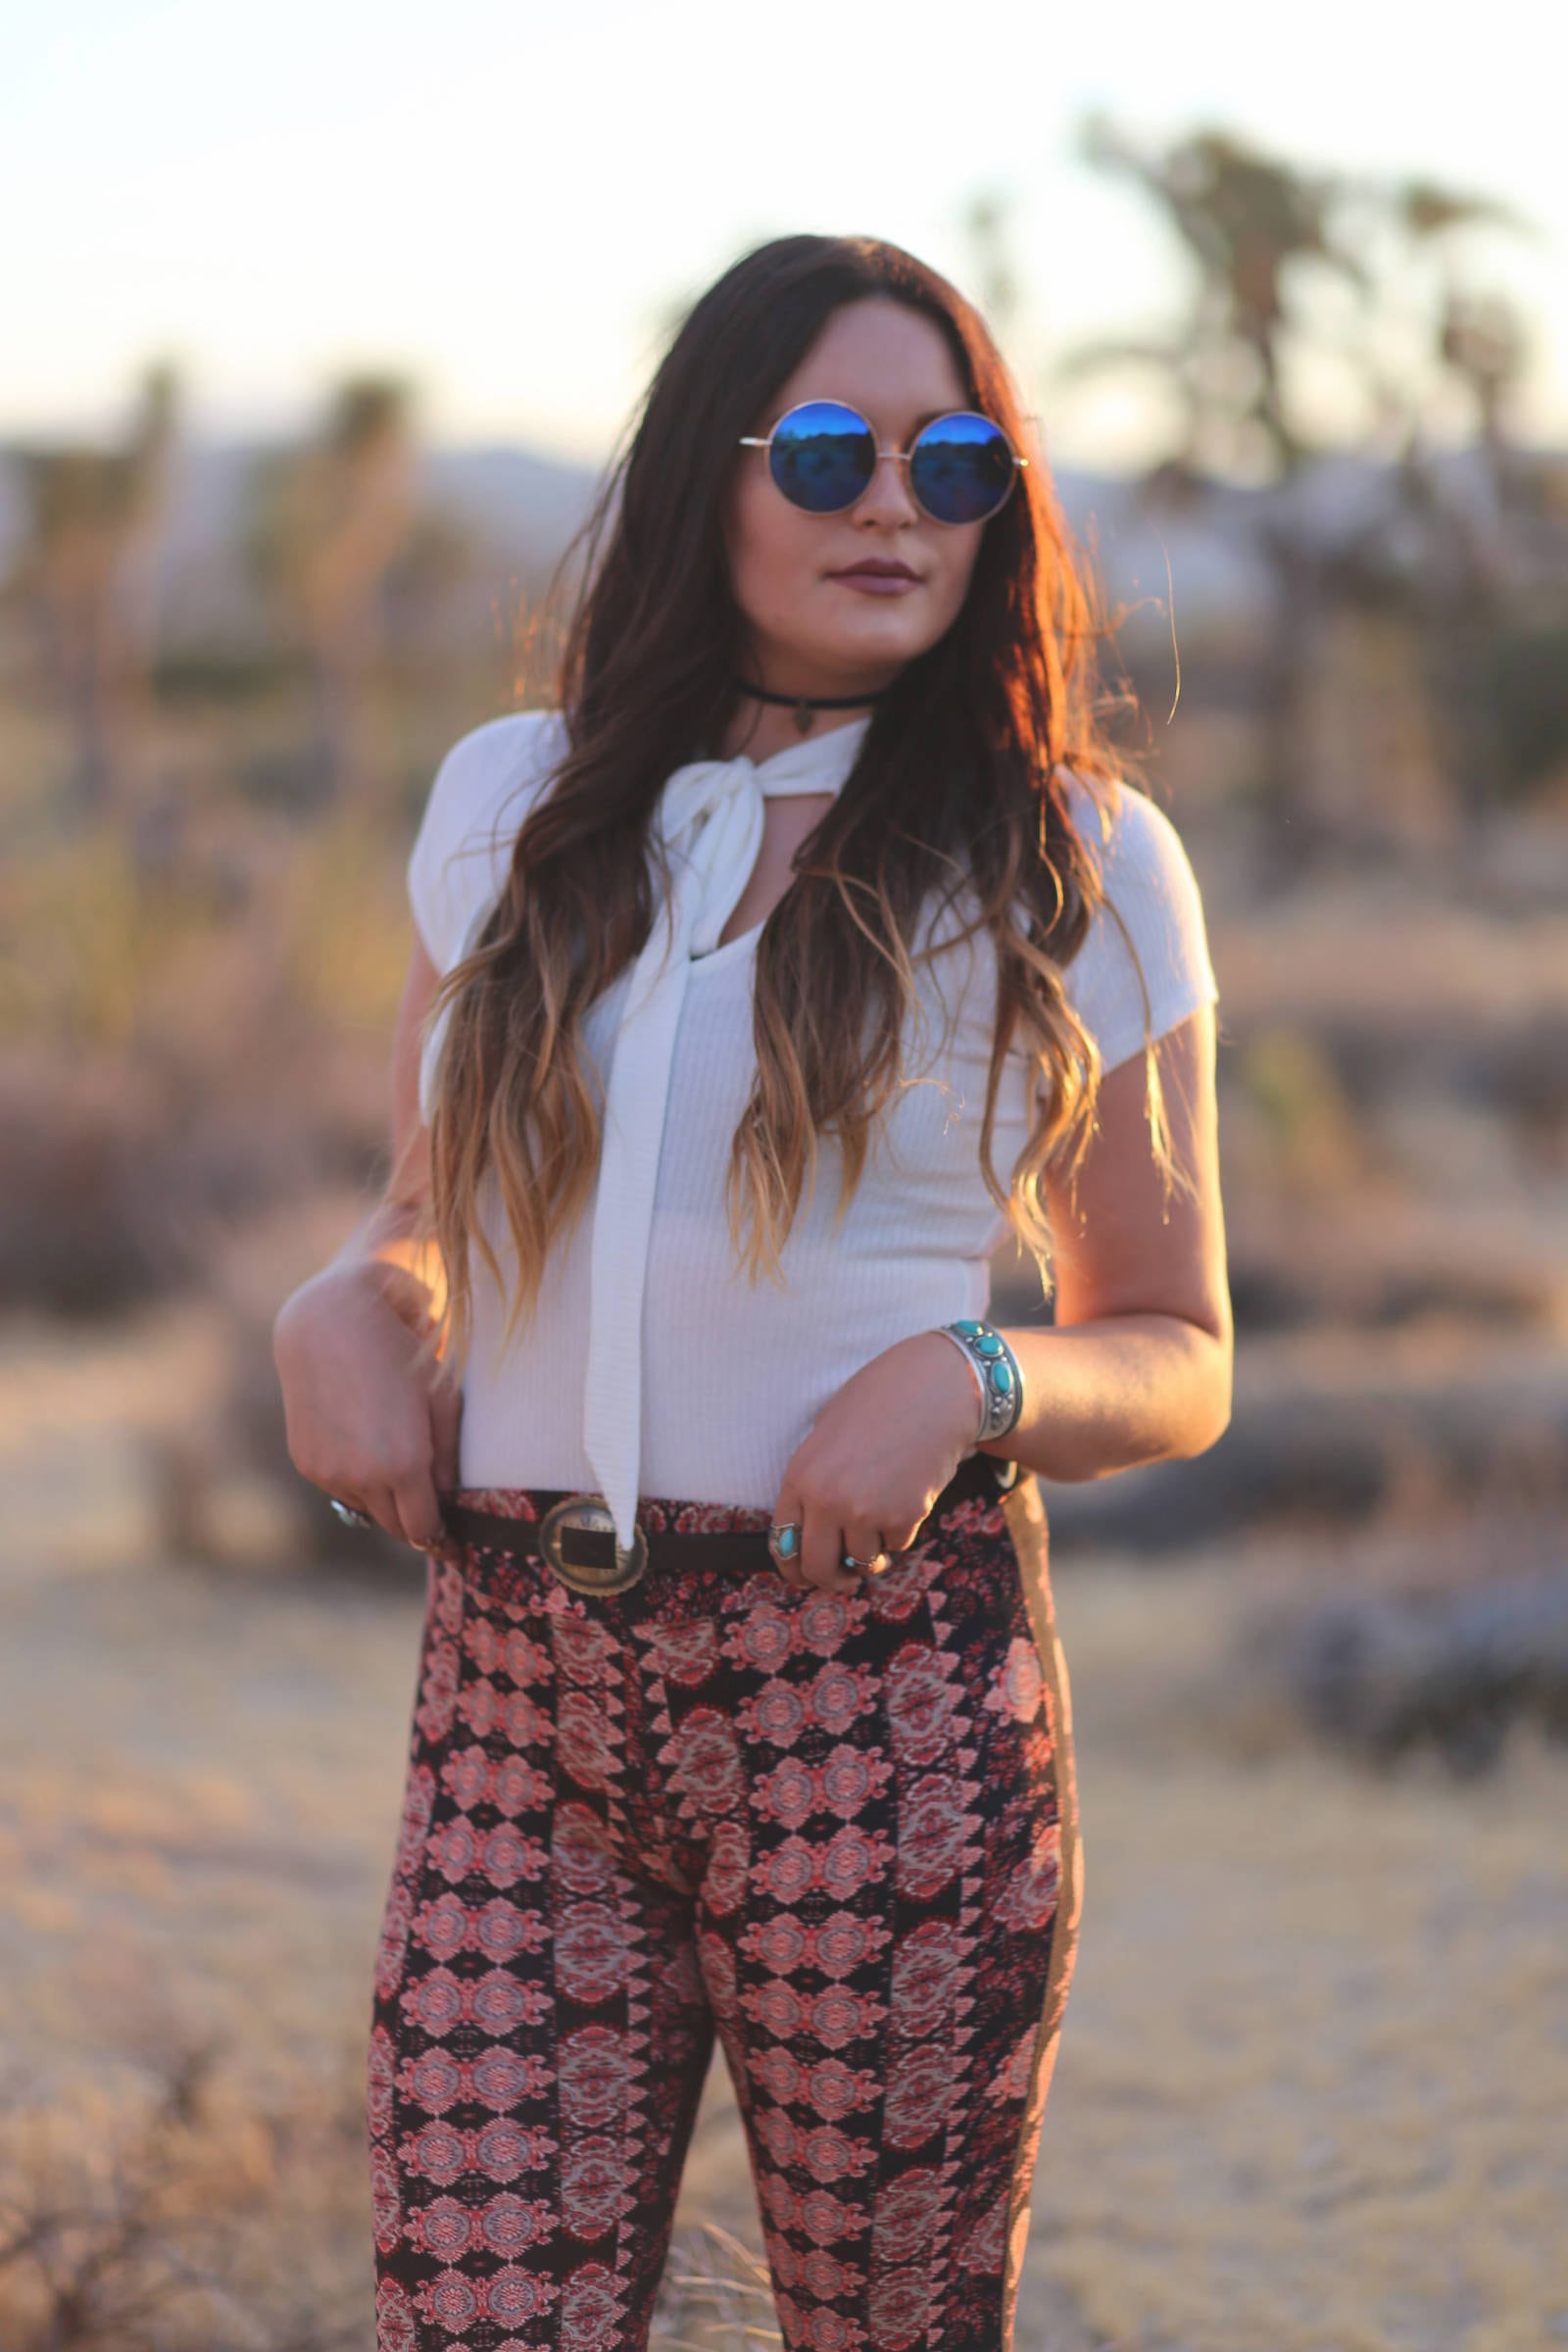 bohemian inspired outfit in joshua tree national park | boho chic | Joshua tree style | desert style